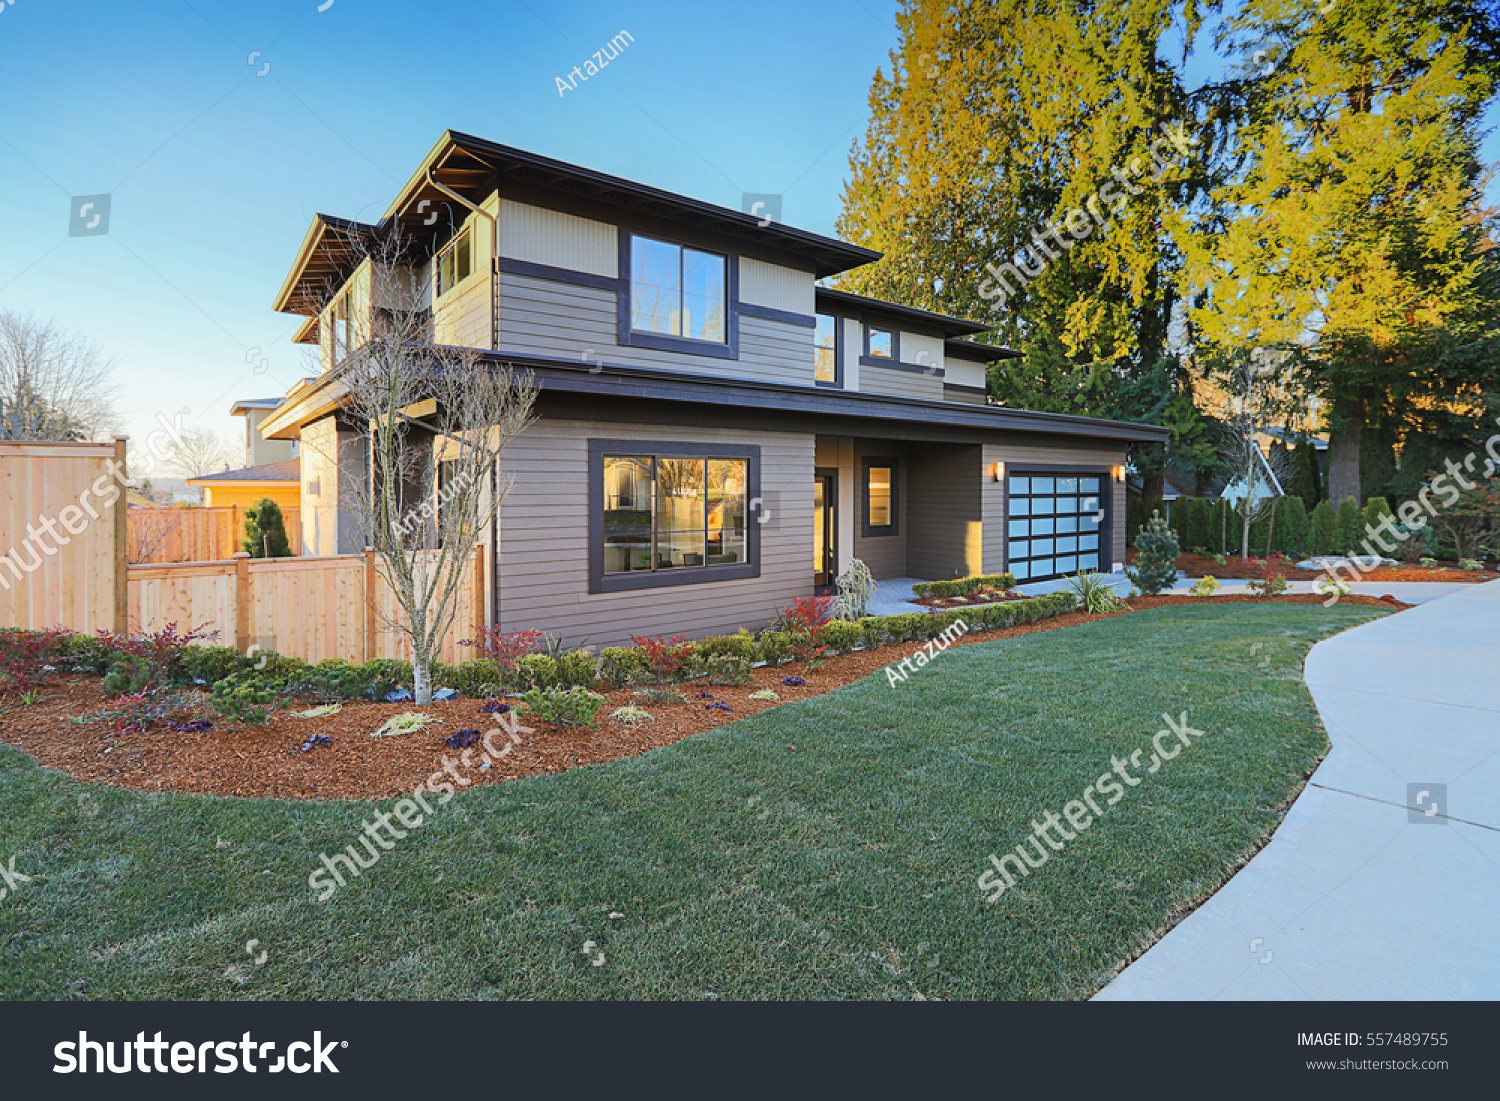 New Construction Home Exterior Contemporary House Stock Photo (Royalty  Free) 557489755   Shutterstock